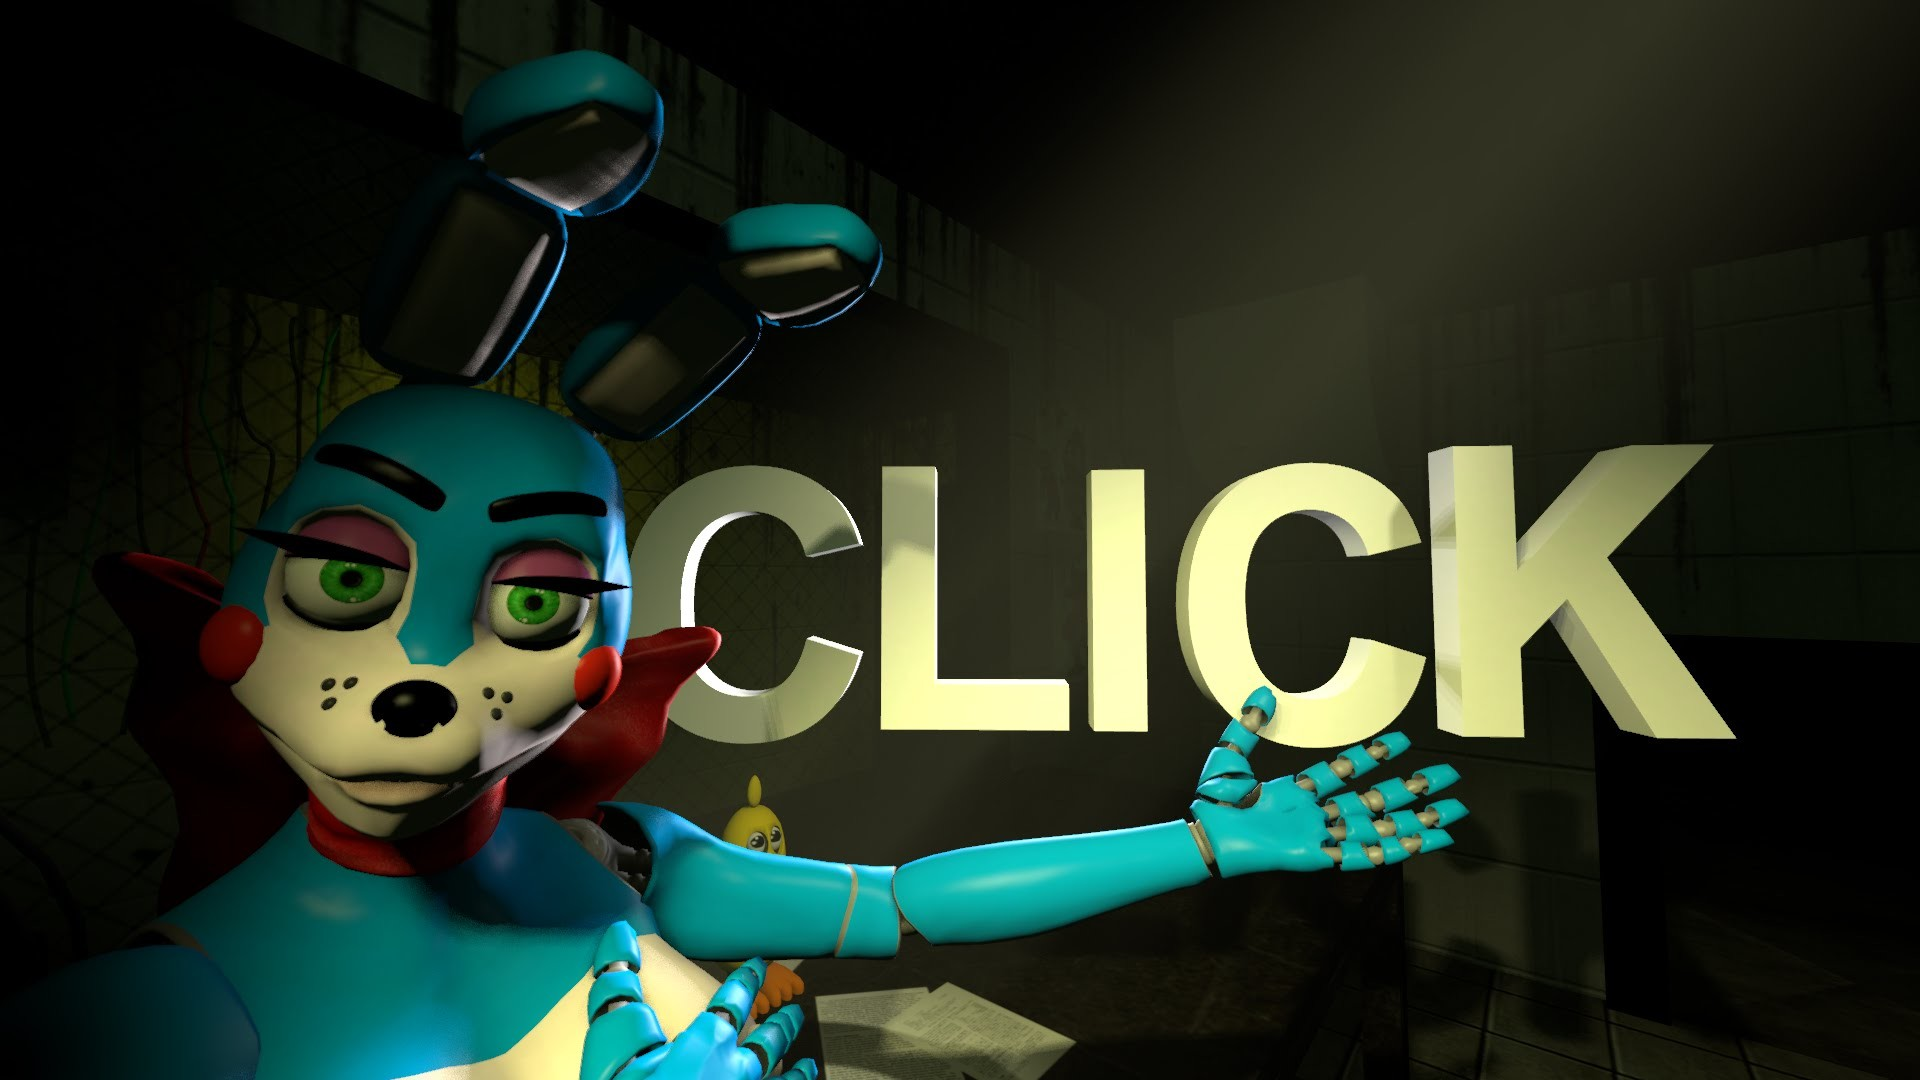 1920x1080 Meeting Toy Bonnie - Preview